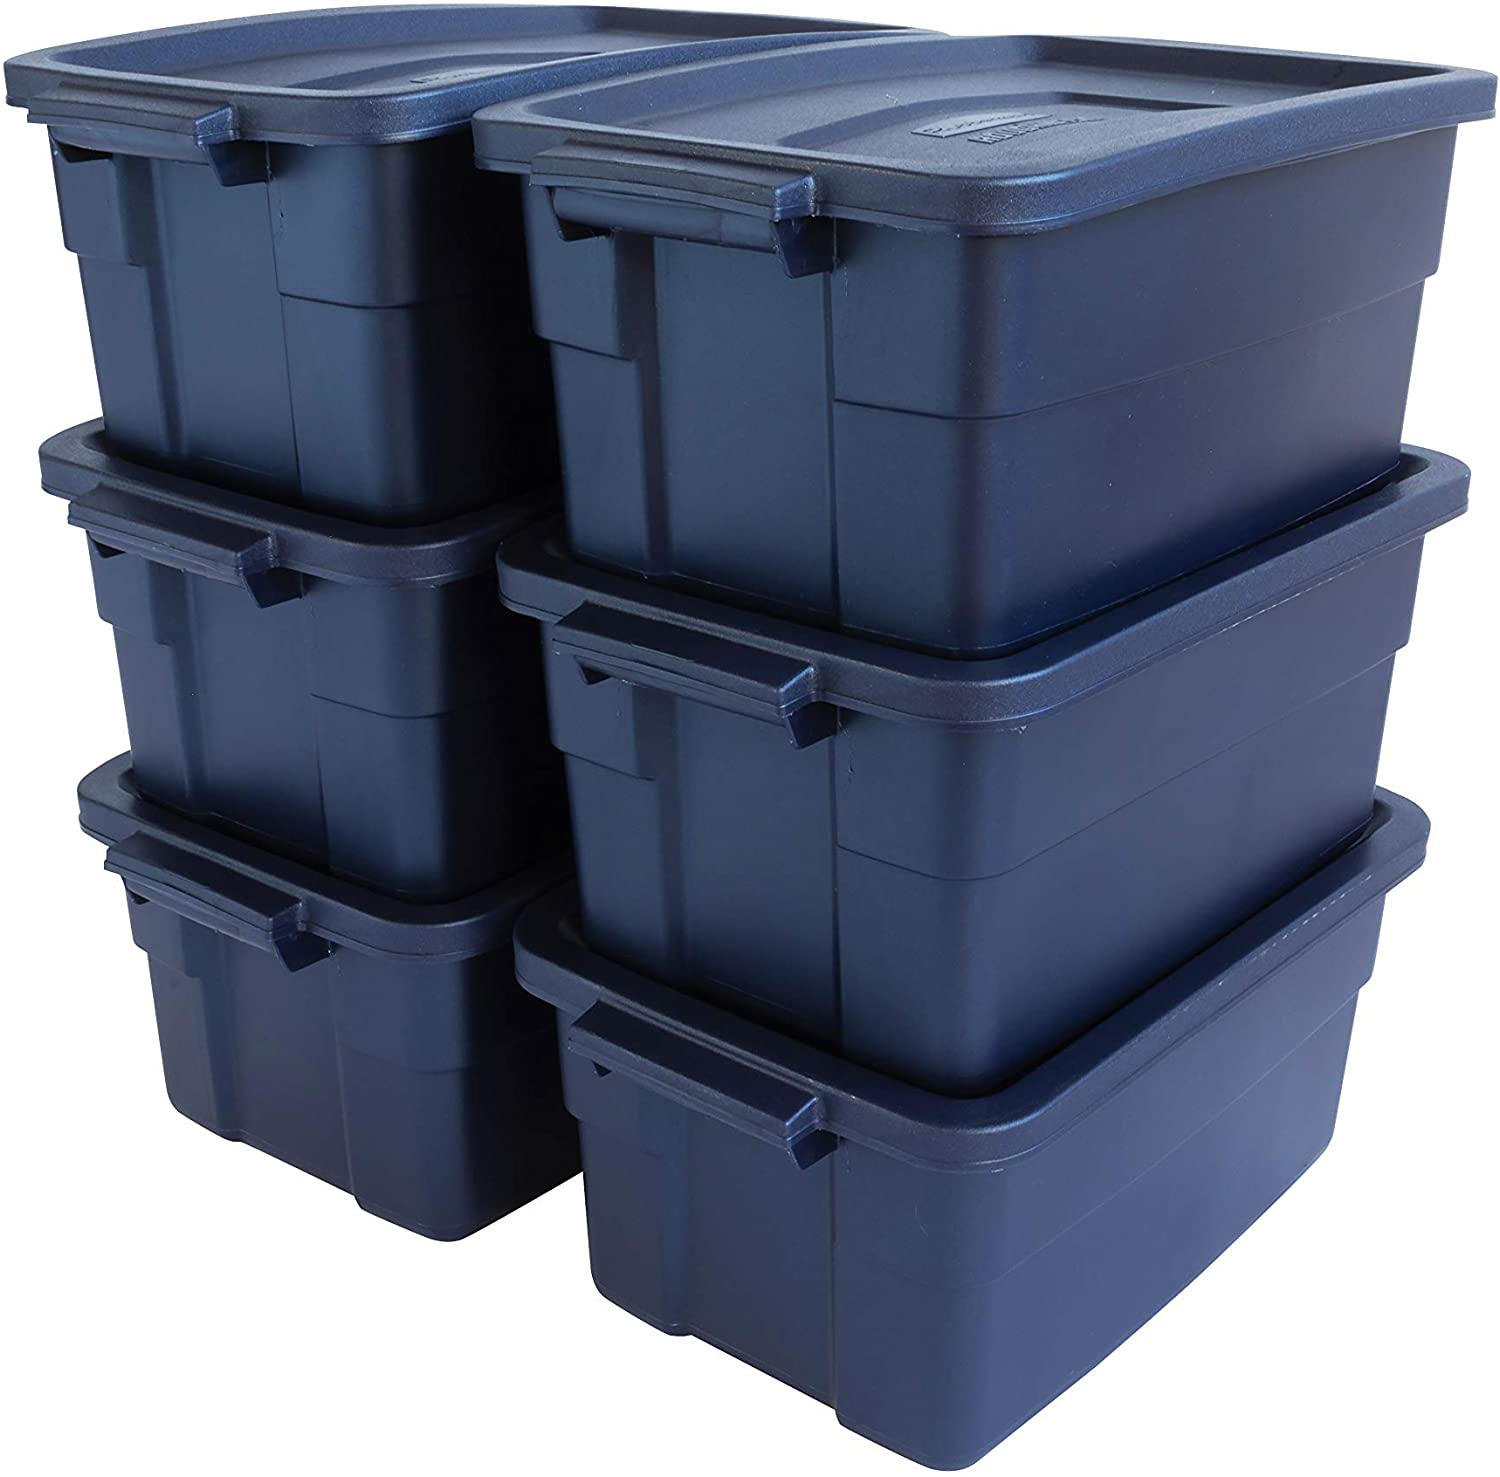 Rubbermaid Roughneck️ Set of Storage Containers